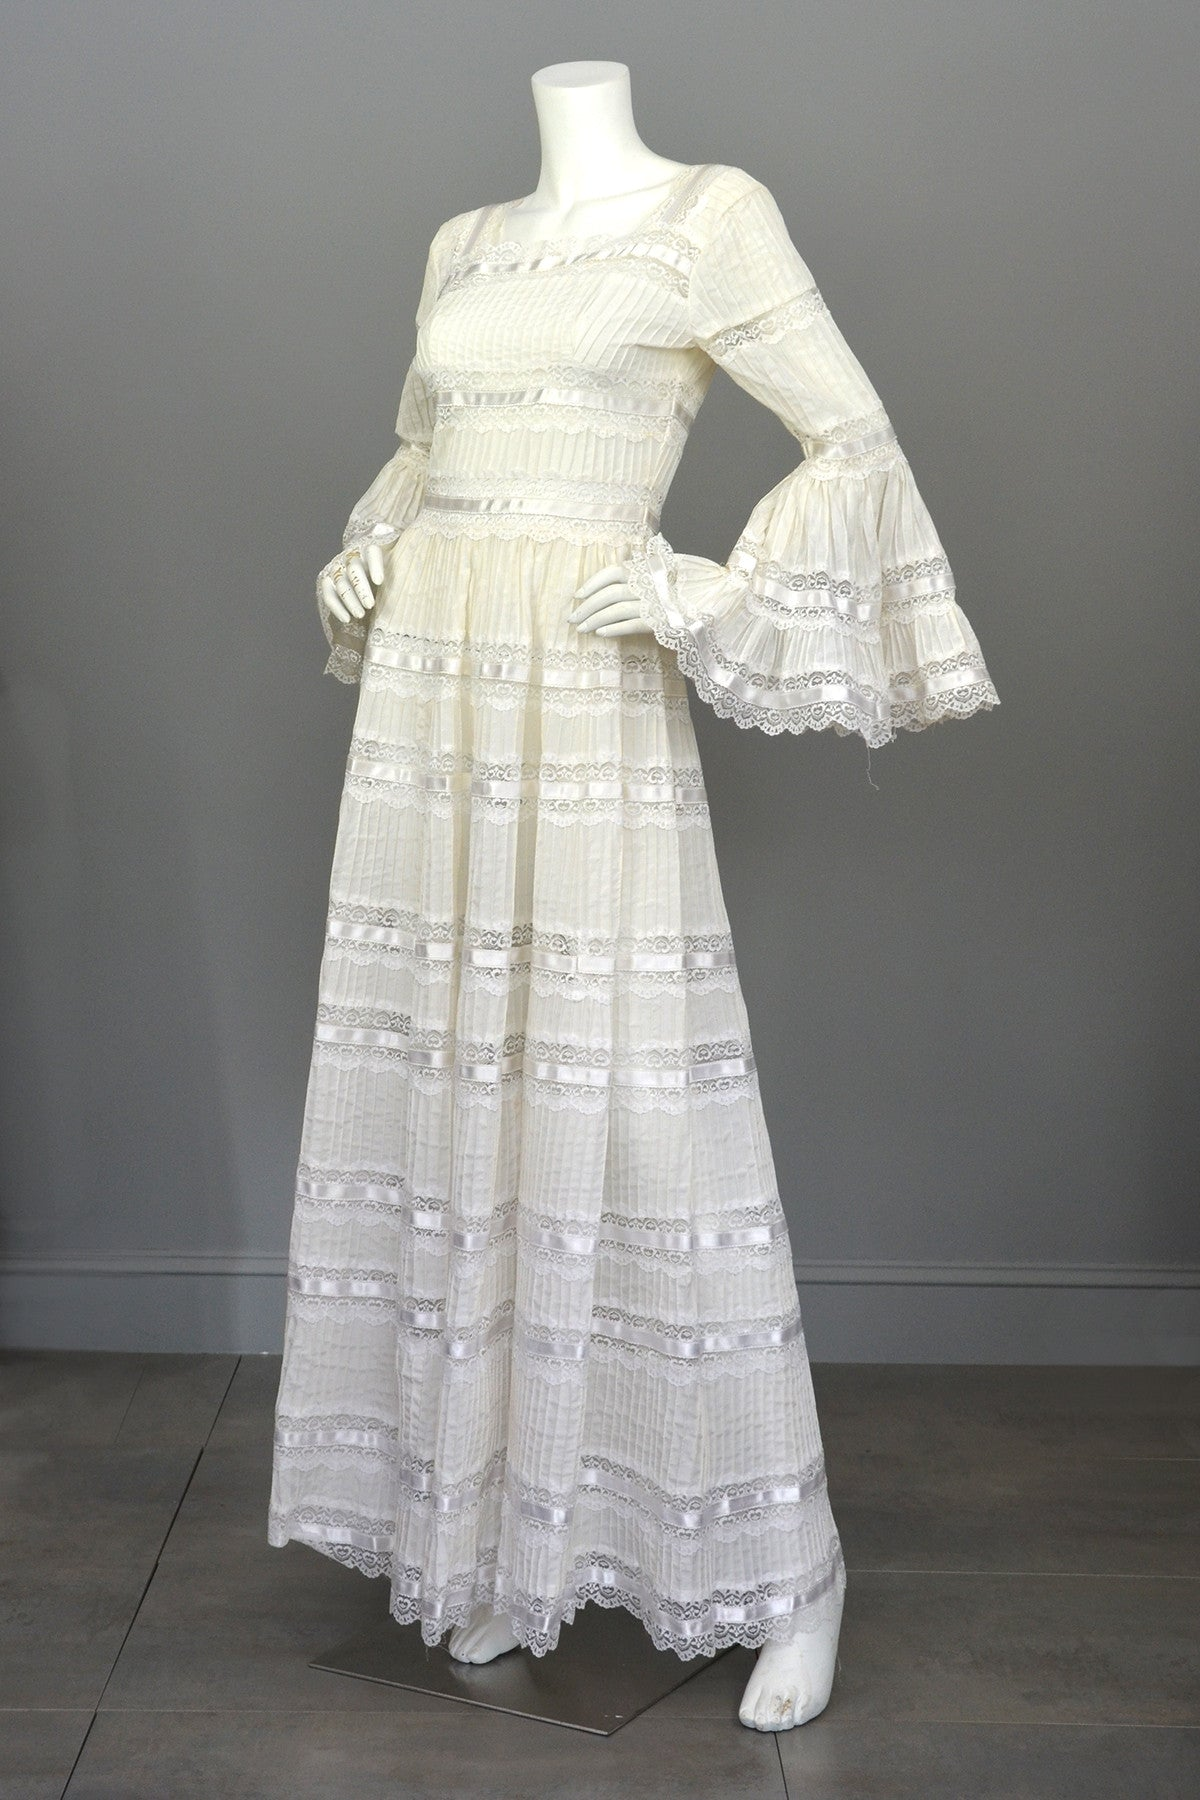 1970s Vintage Mexican Wedding Dress with Bell Sleeves and Lace